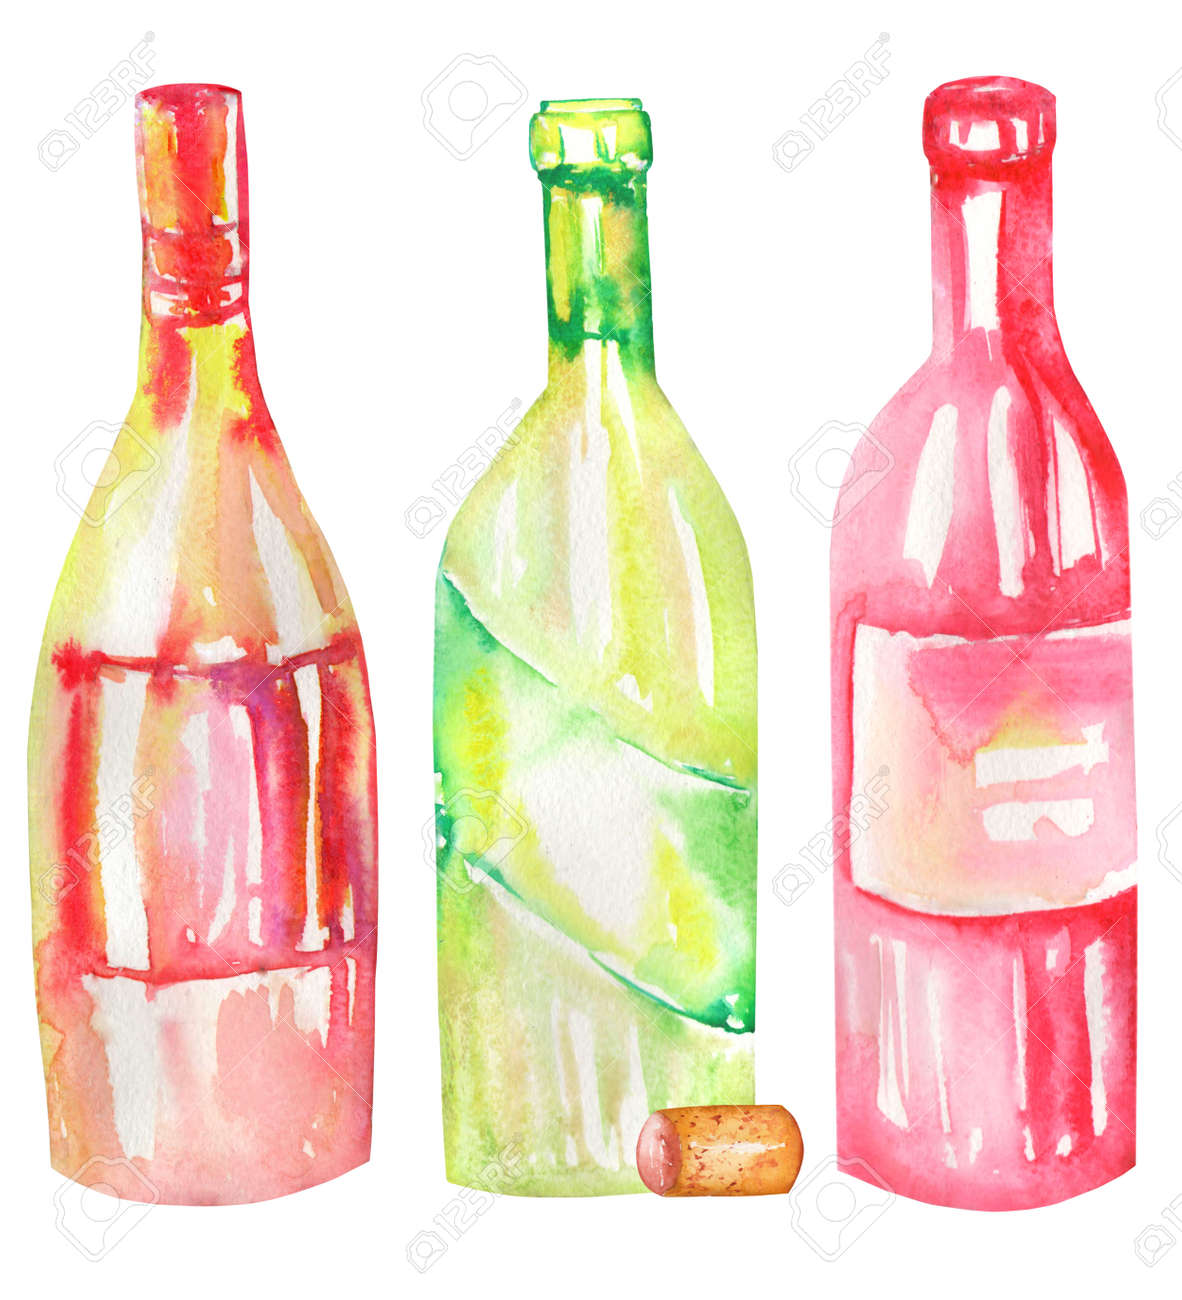 An Illustration Of The Isolated Watercolor Wine Bottles Painted Stock Photo Picture And Royalty Free Image 51042440